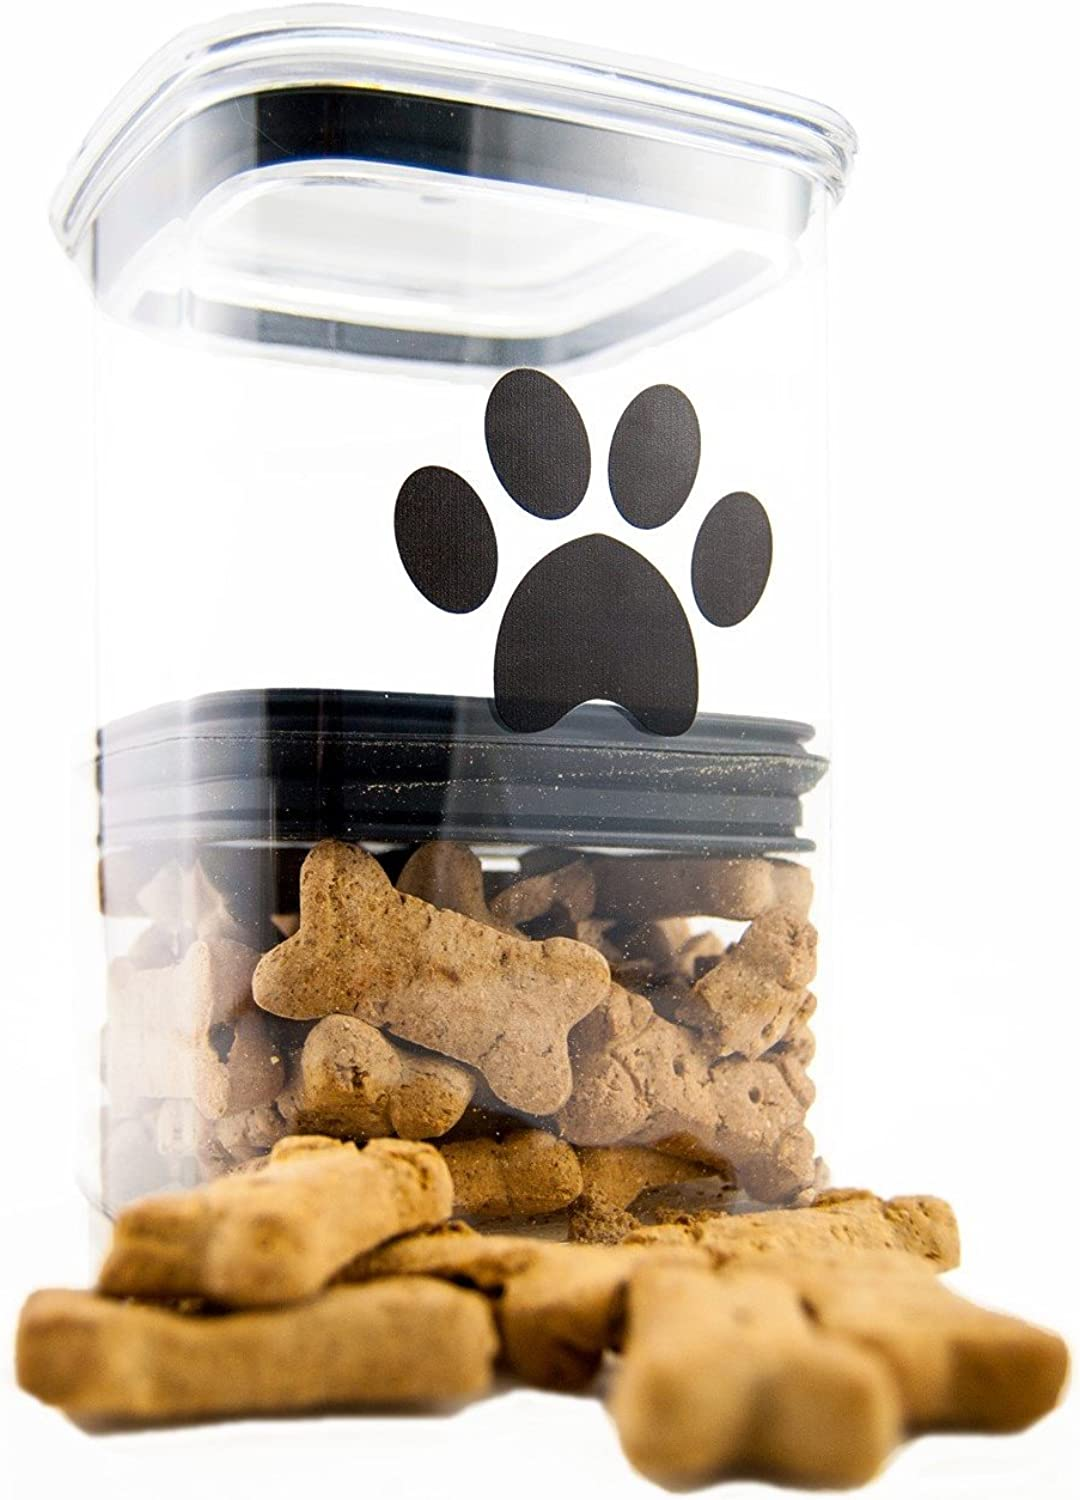 Airscape Pet Food and Treat Storage Container  Patented Airtight Lid Preserves Food Freshness  Clear Plastic  64 fl. oz